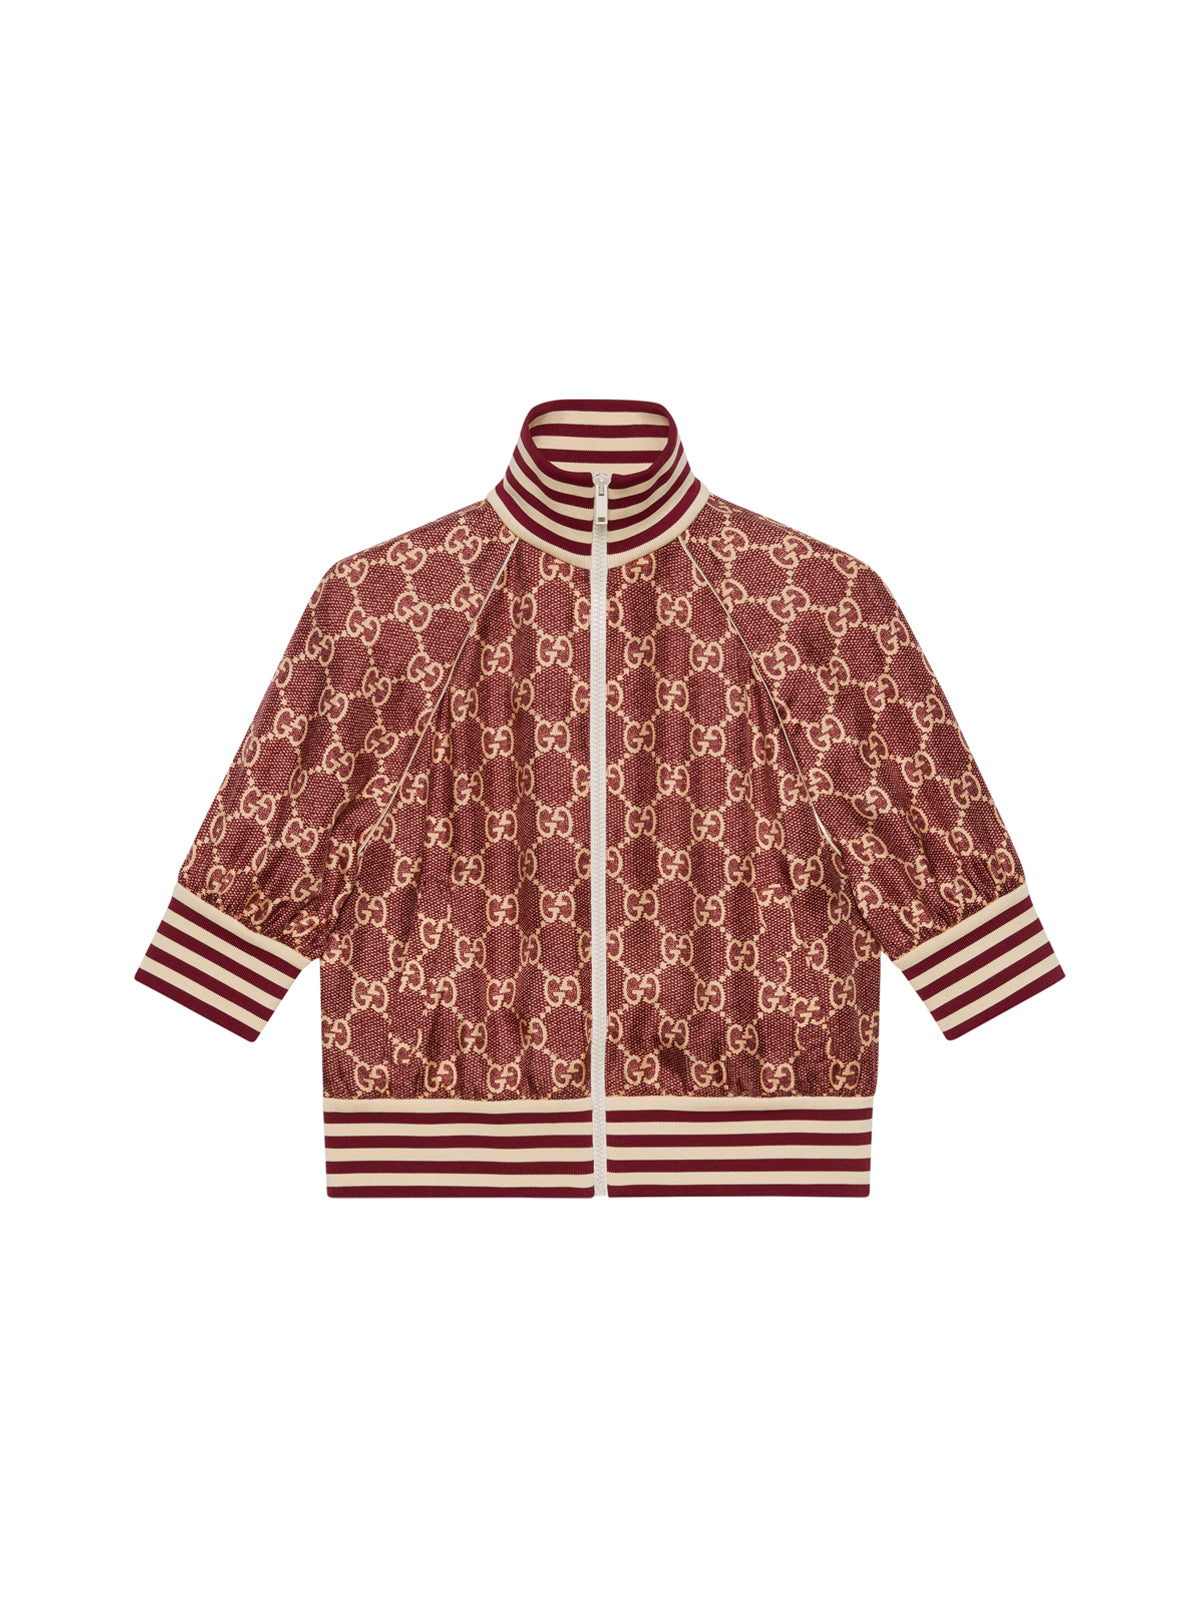 GG Supreme print silk jacket